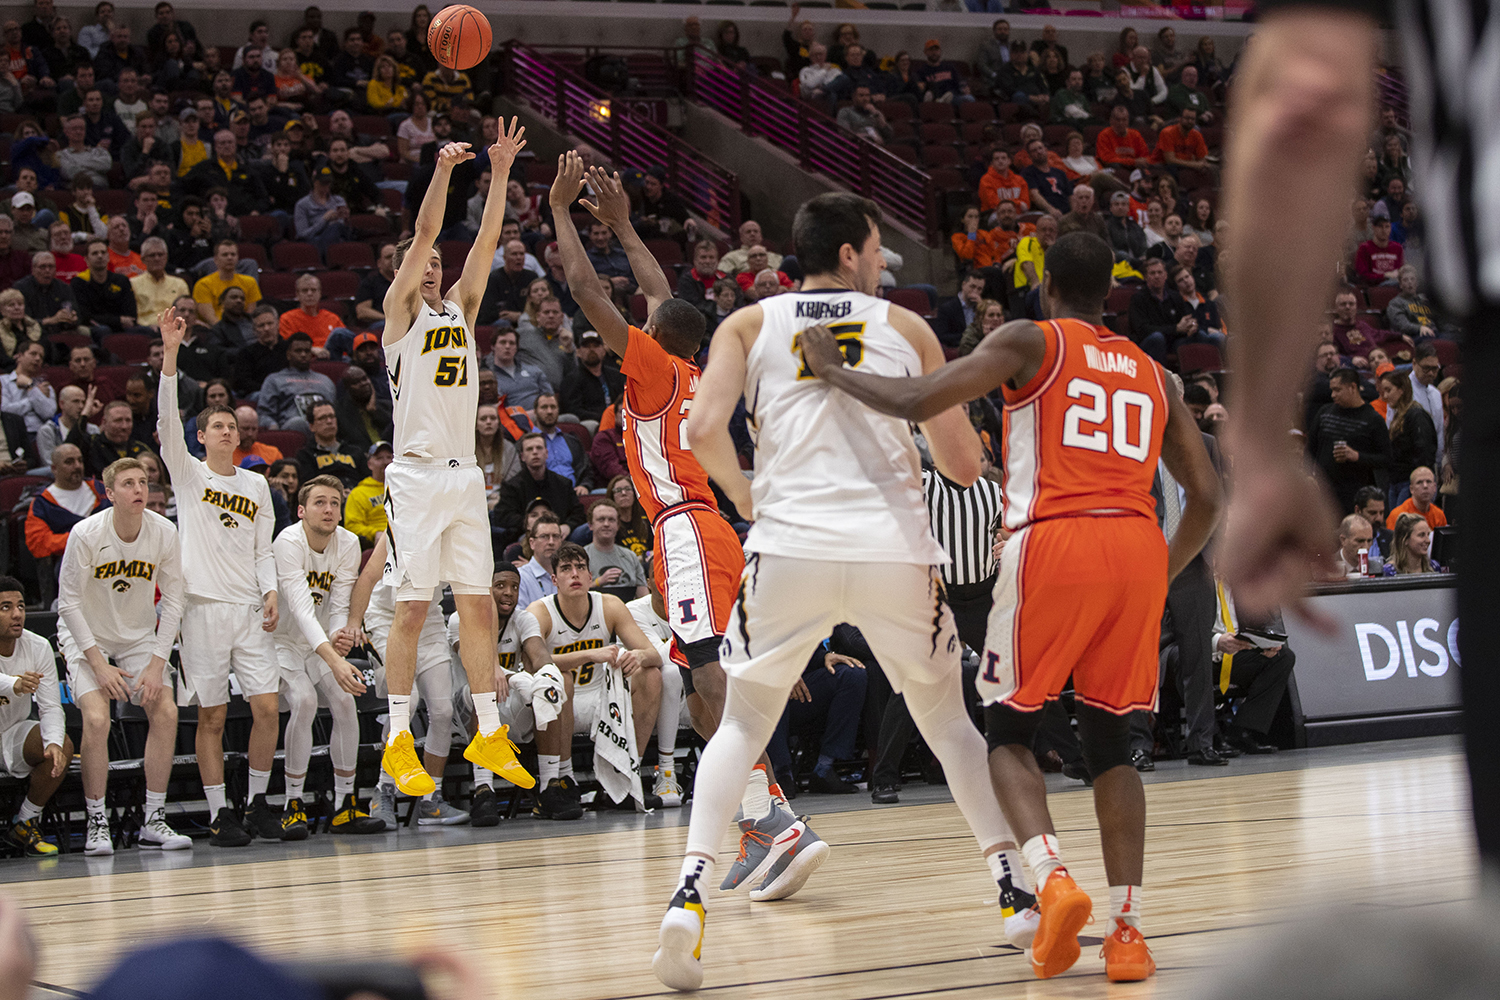 Iowa forward Nicholas Baer (51) attempts a 3-pointer during the Iowa/Illinois Big Ten Tournament men's basketball game in the United Center in Chicago on Thursday, March 14, 2019. (Lily Smith/The Daily Iowan)